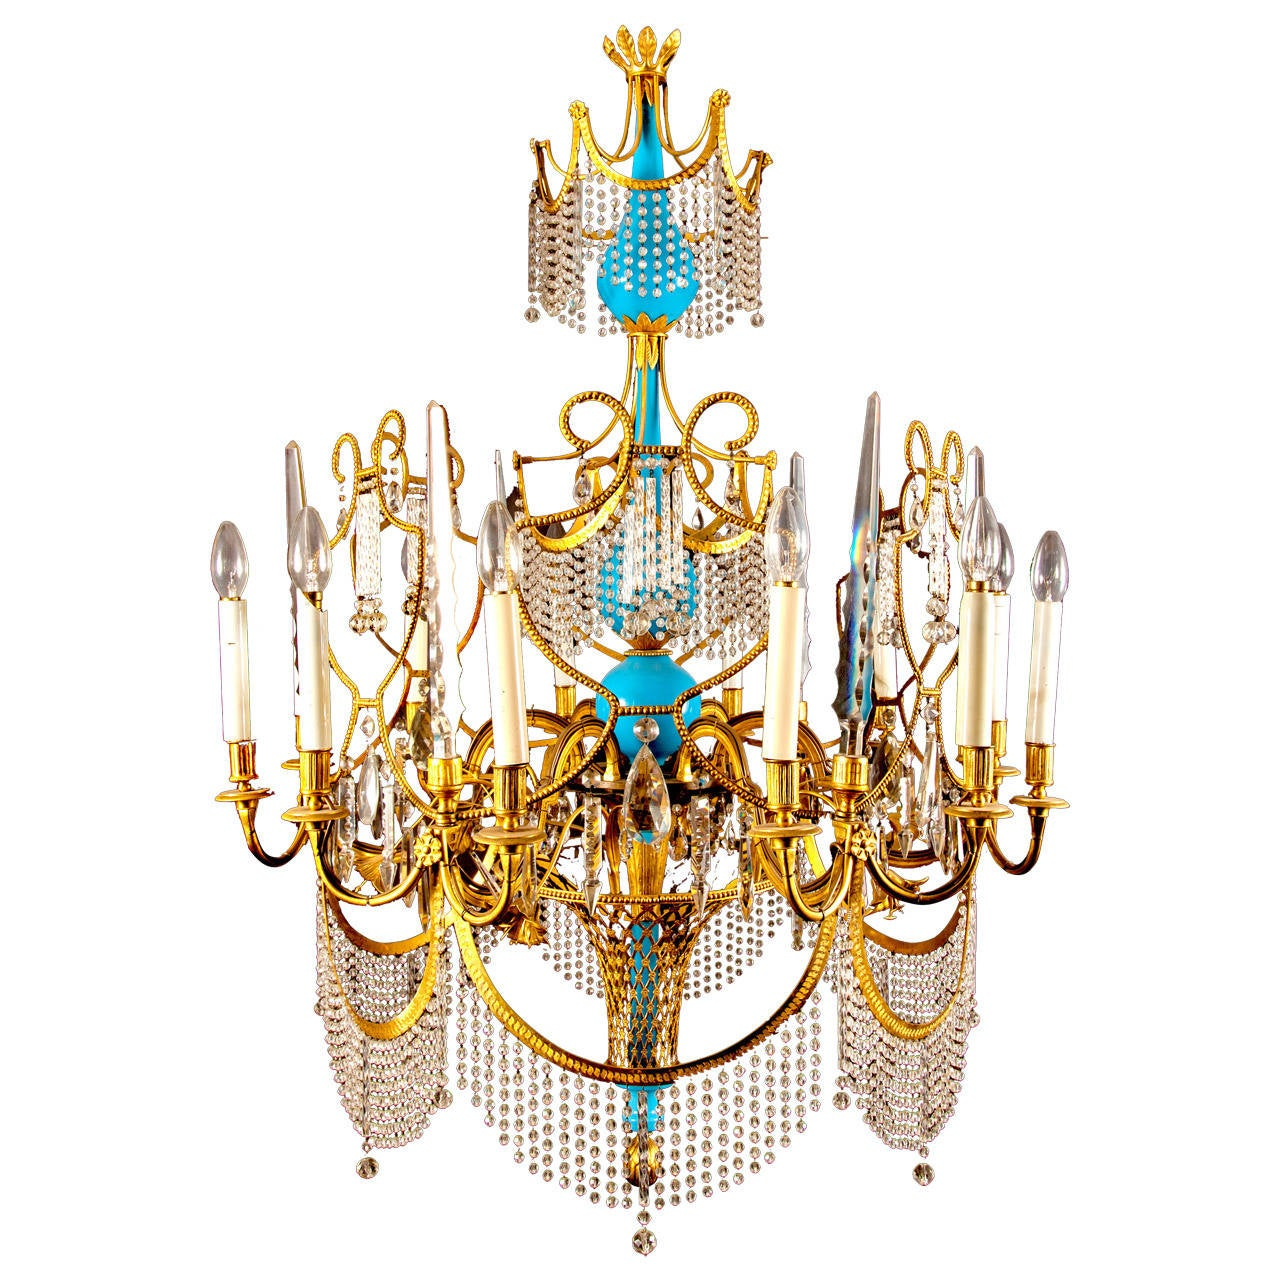 Russian ormolu, cut glass and blue porcelain Empire style antique chandelier  For Sale - Russian Ormolu, Cut Glass And Blue Porcelain Empire Style Antique